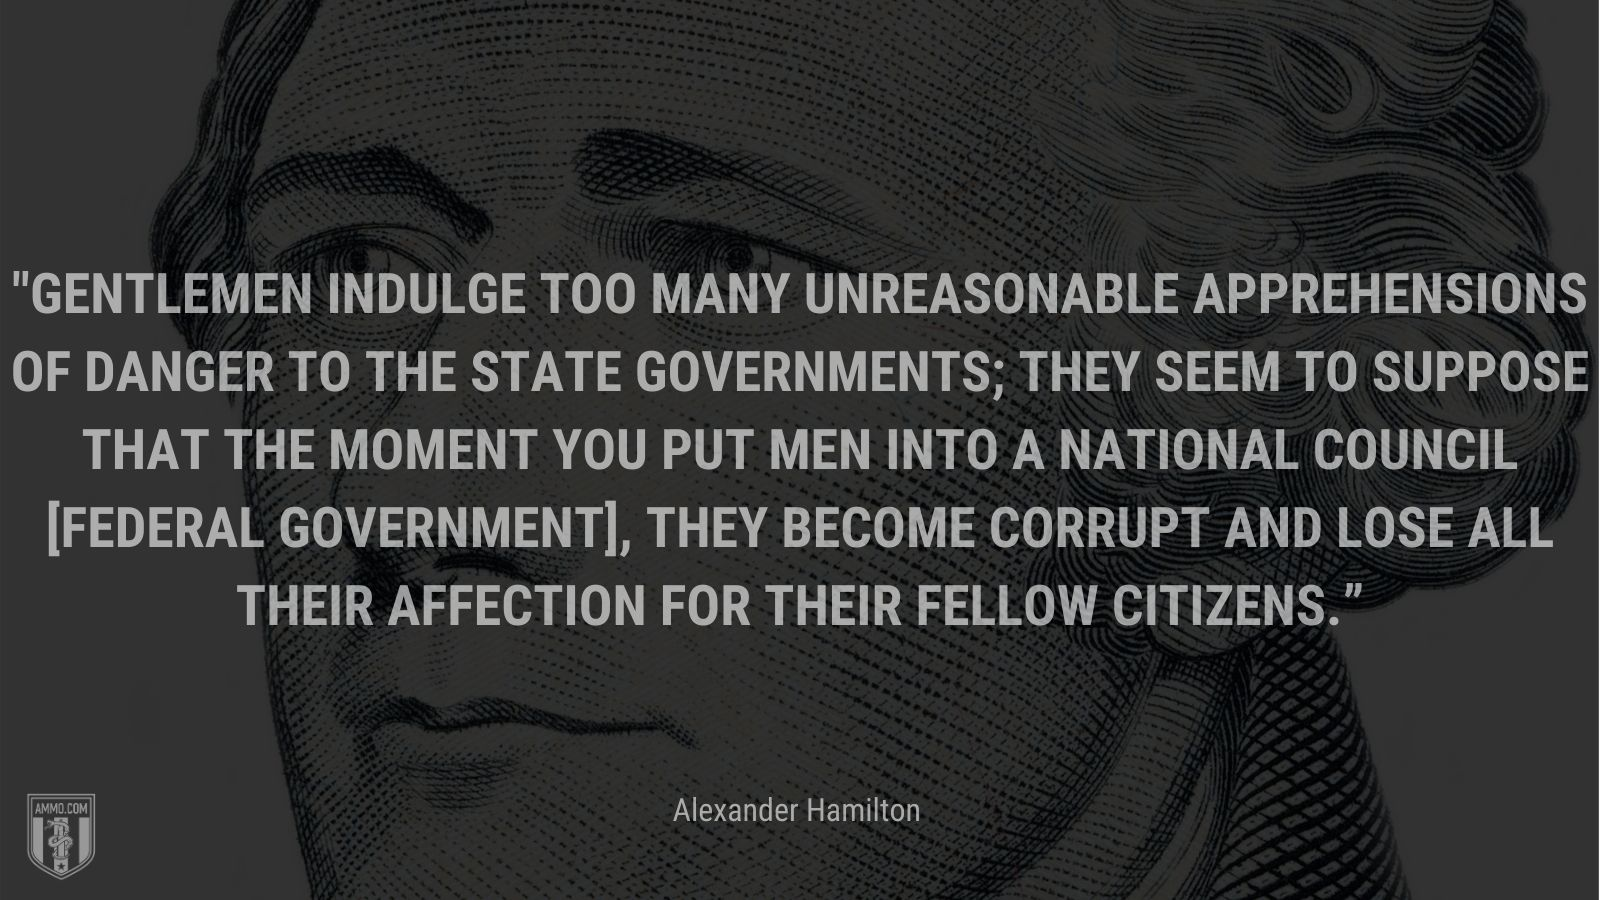 """""""Gentlemen indulge too many unreasonable apprehensions of danger to the state governments; they seem to suppose that the moment you put men into a national council [federal government], they become corrupt and lose all their affection for their fellow citizens."""" - Alexander Hamilton"""